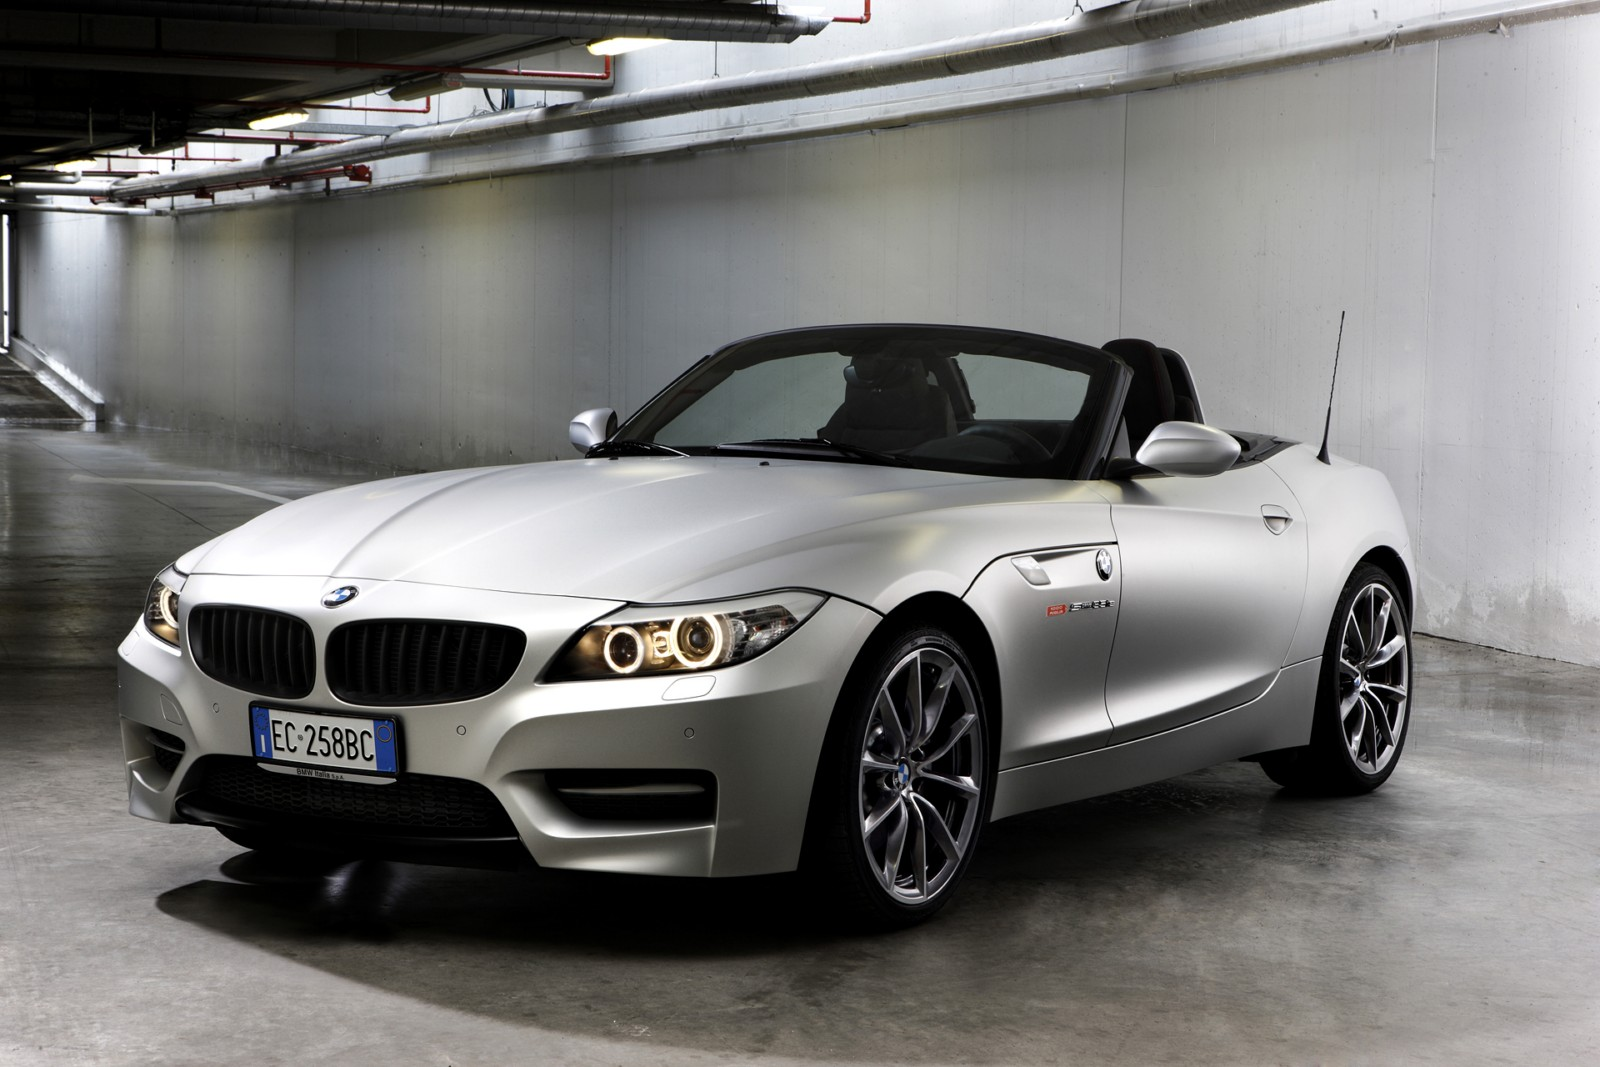 2010 Bmw Z4 Sdrive35is Mille Miglia Limited Edition